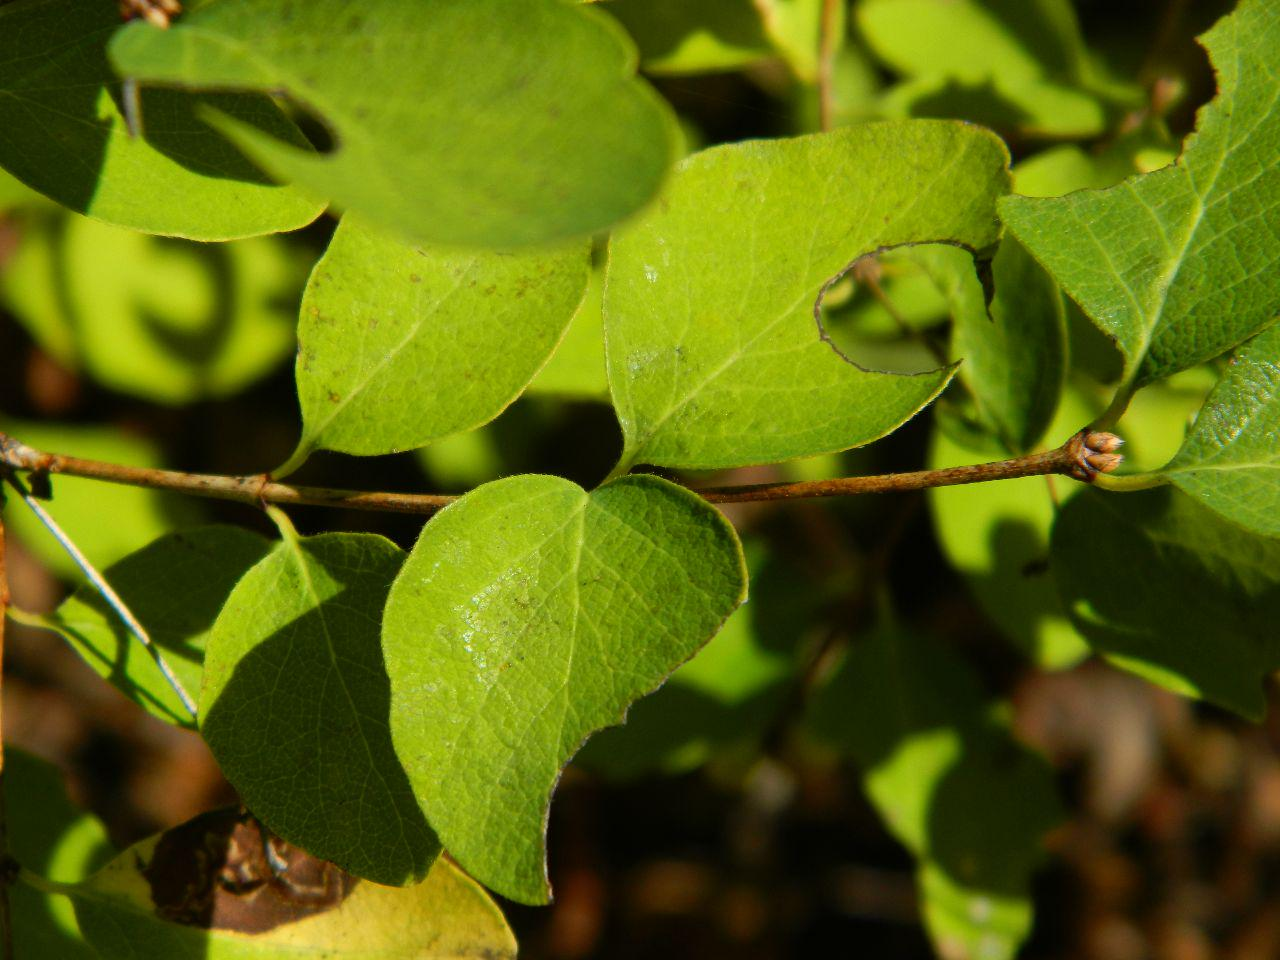 Snowberry leaves with holes